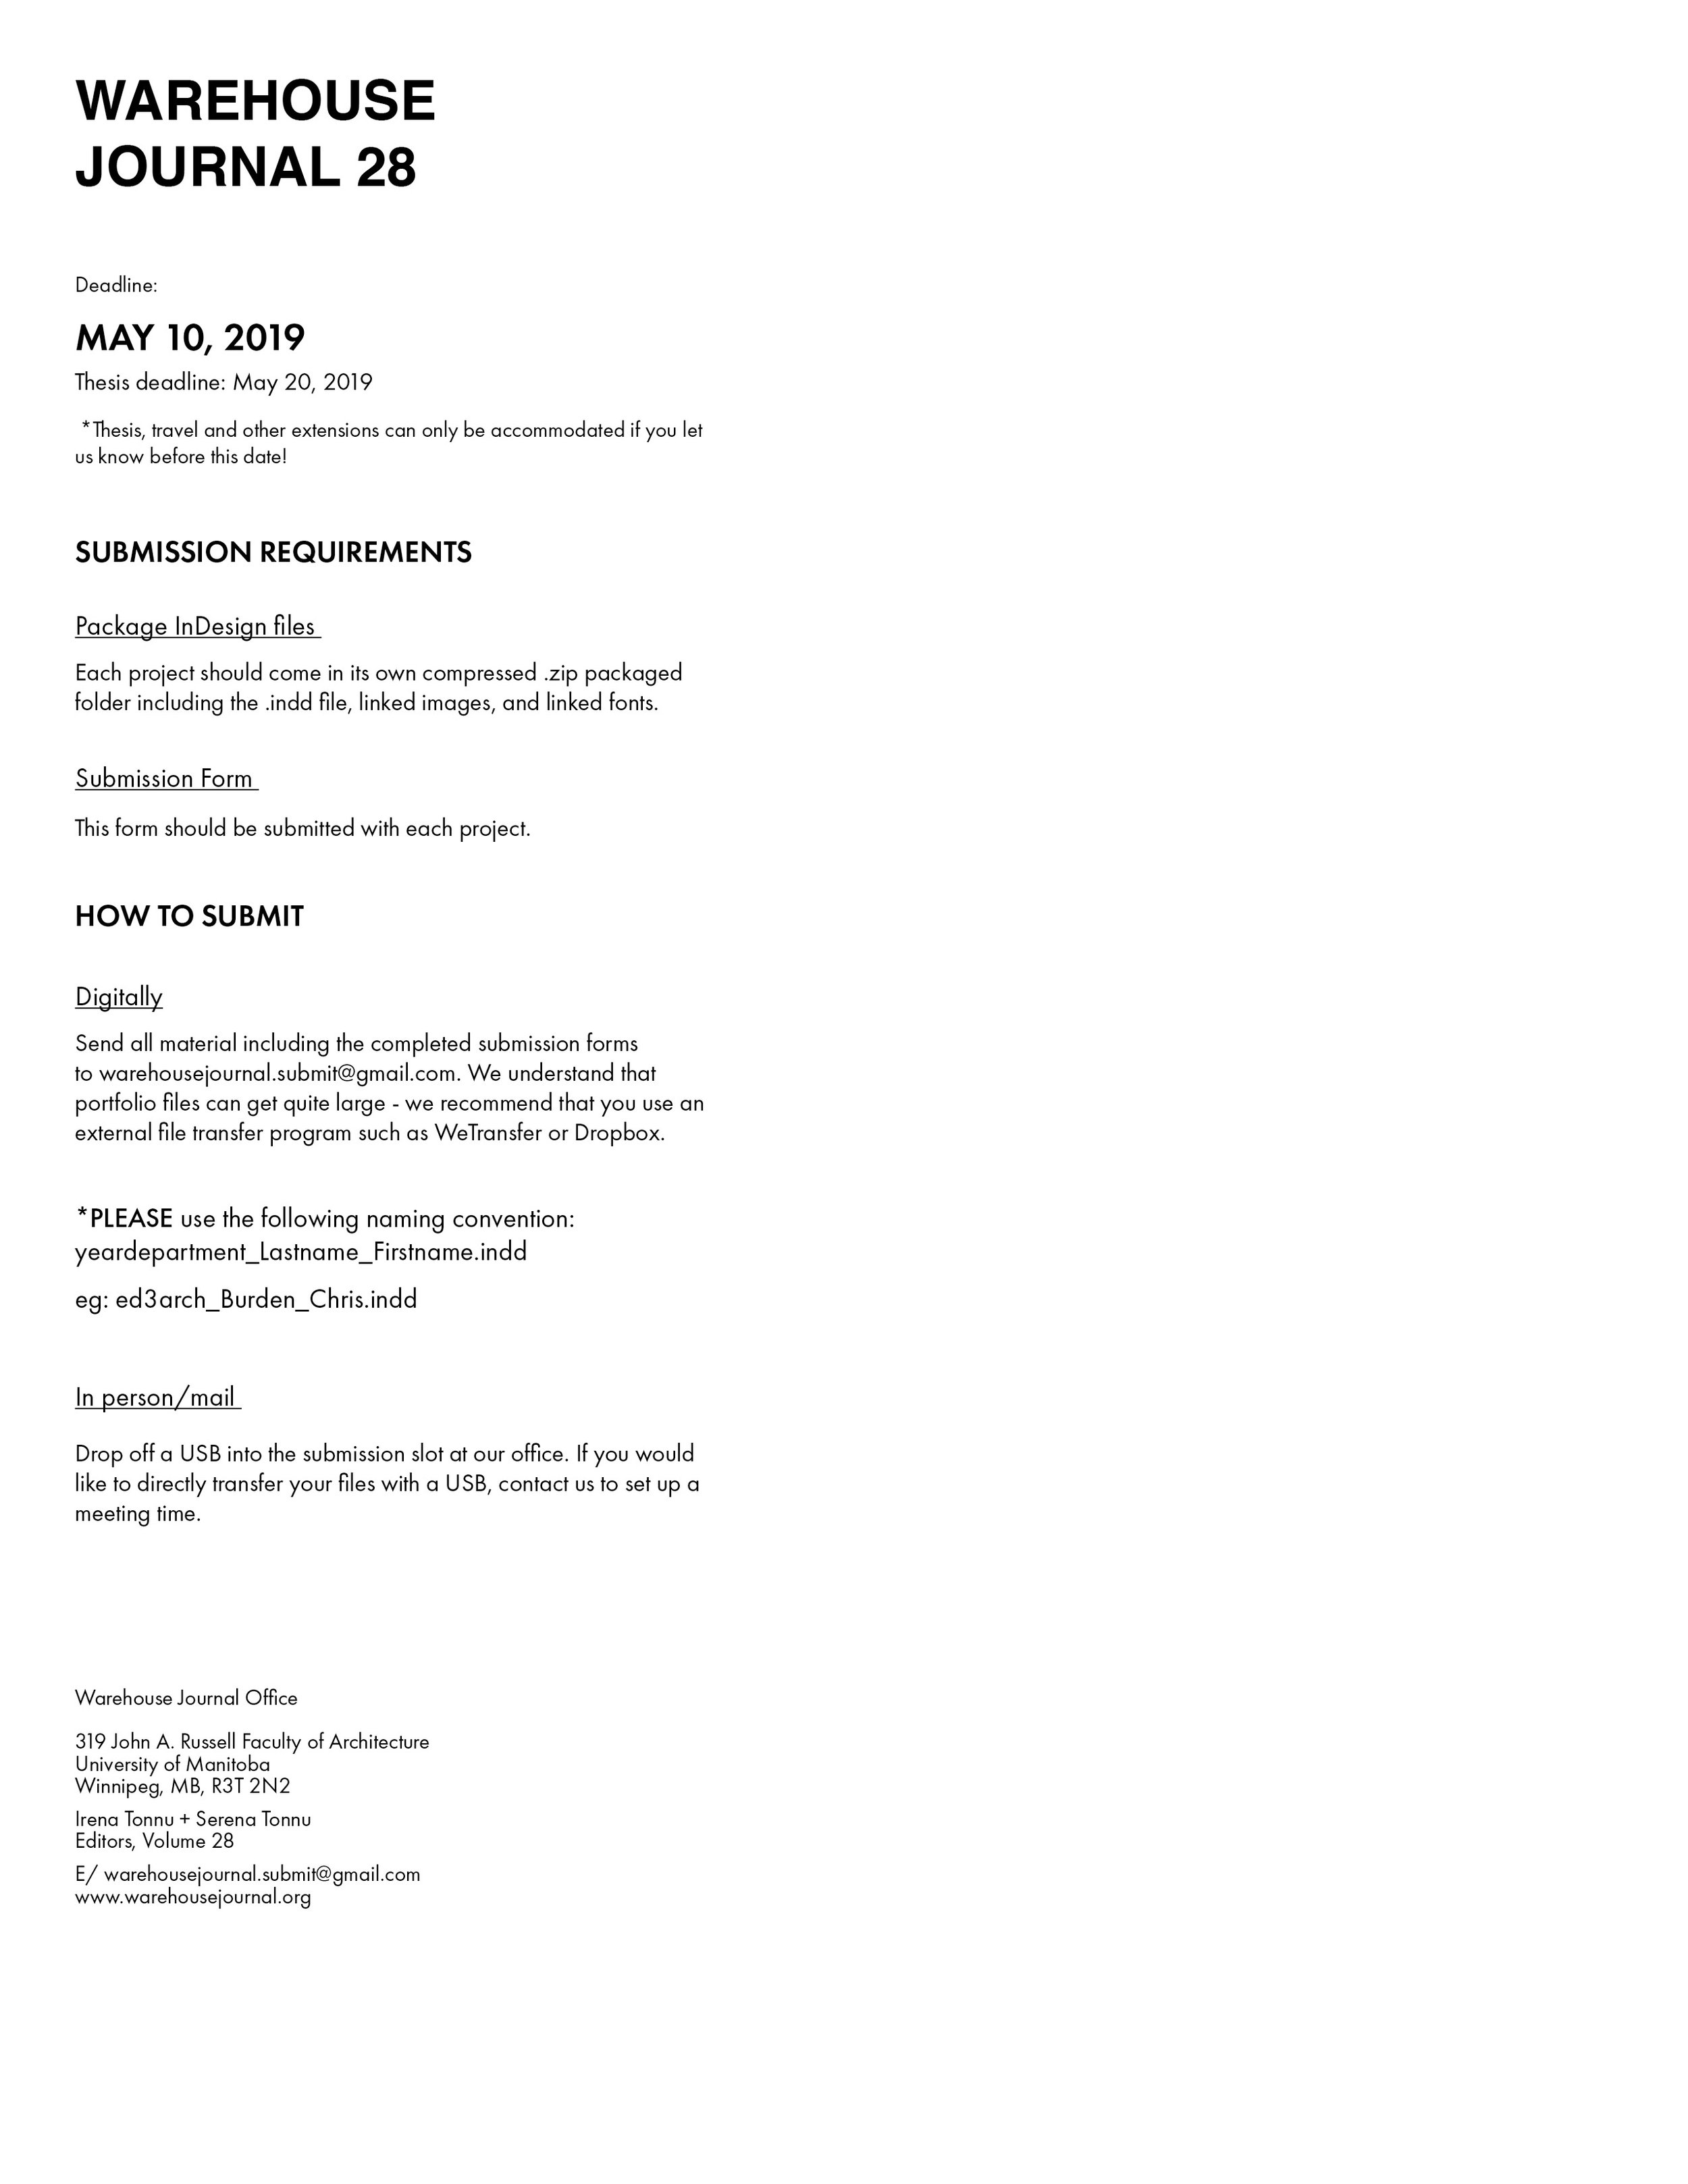 Submission website page 2.jpg